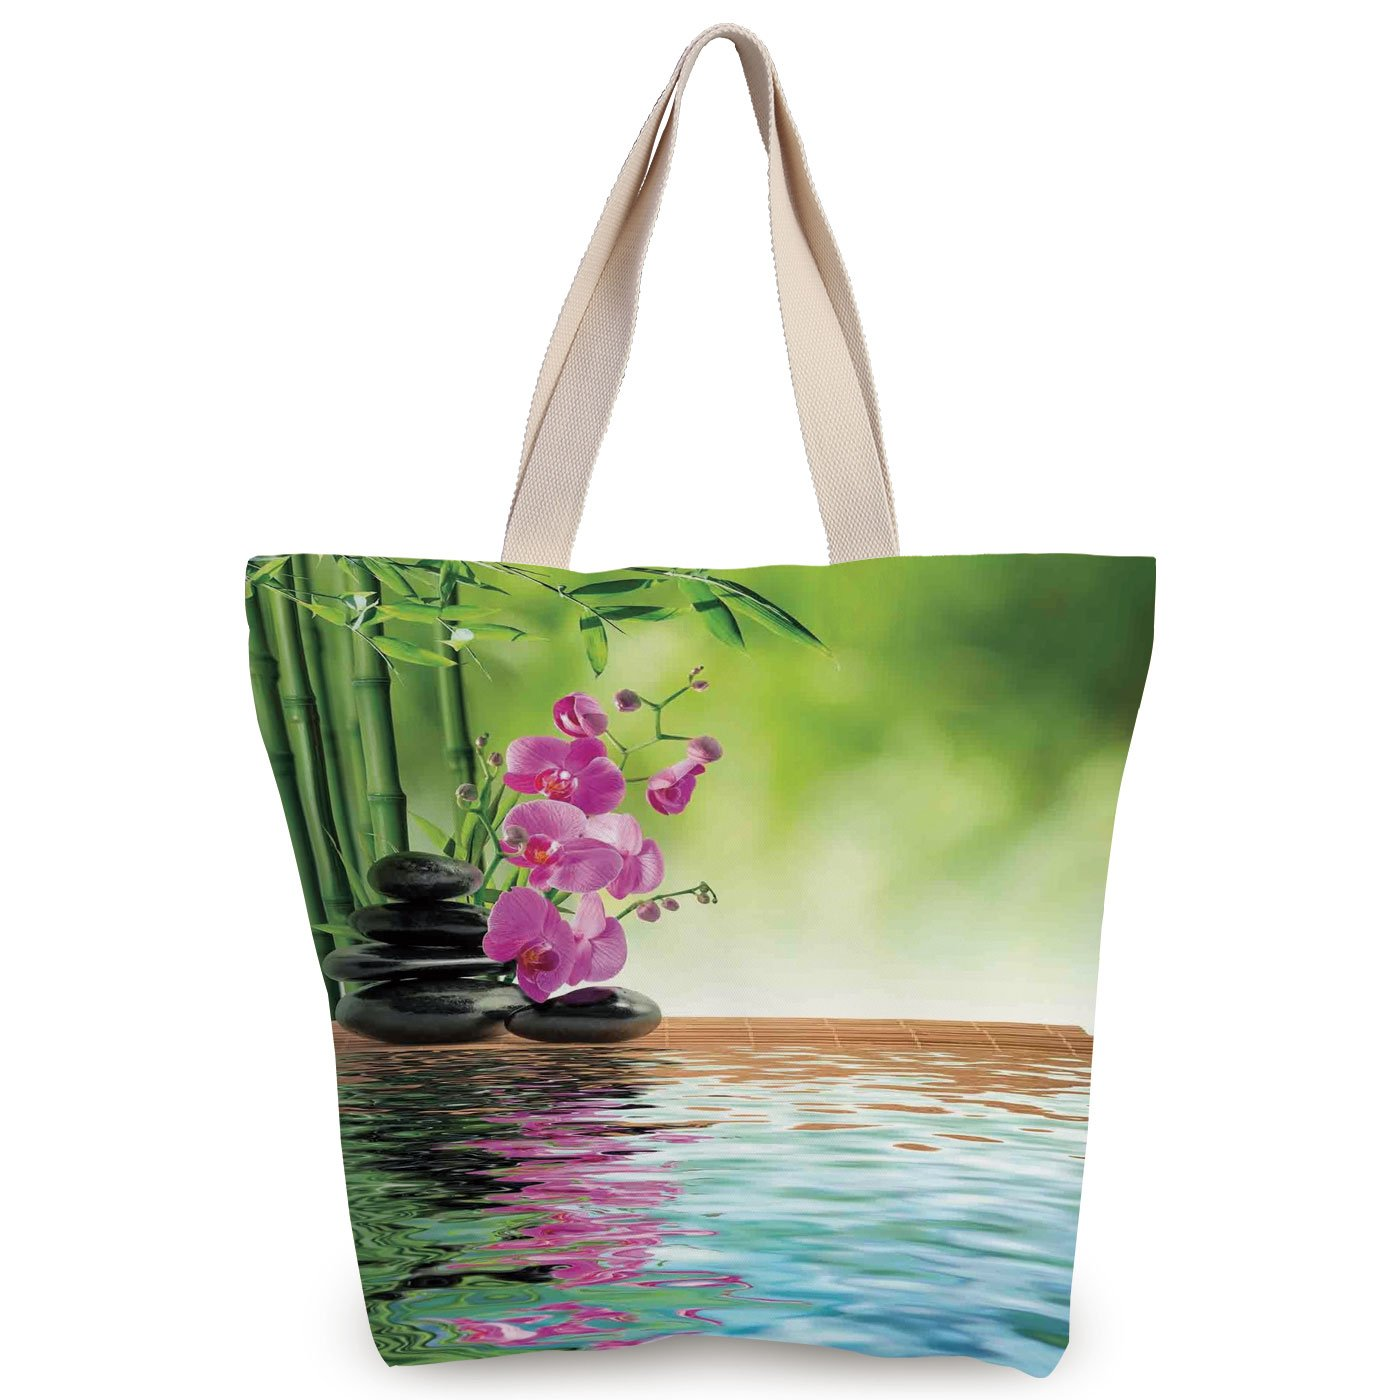 iPrint Stylish Canvas Tote Bag,Spa Decor,Orchid Flower Stone Oriental Culture Spirituality Wellness Tropical Holiday,Canvas Shopping bag,shoulder handbags,Shoulder Bag